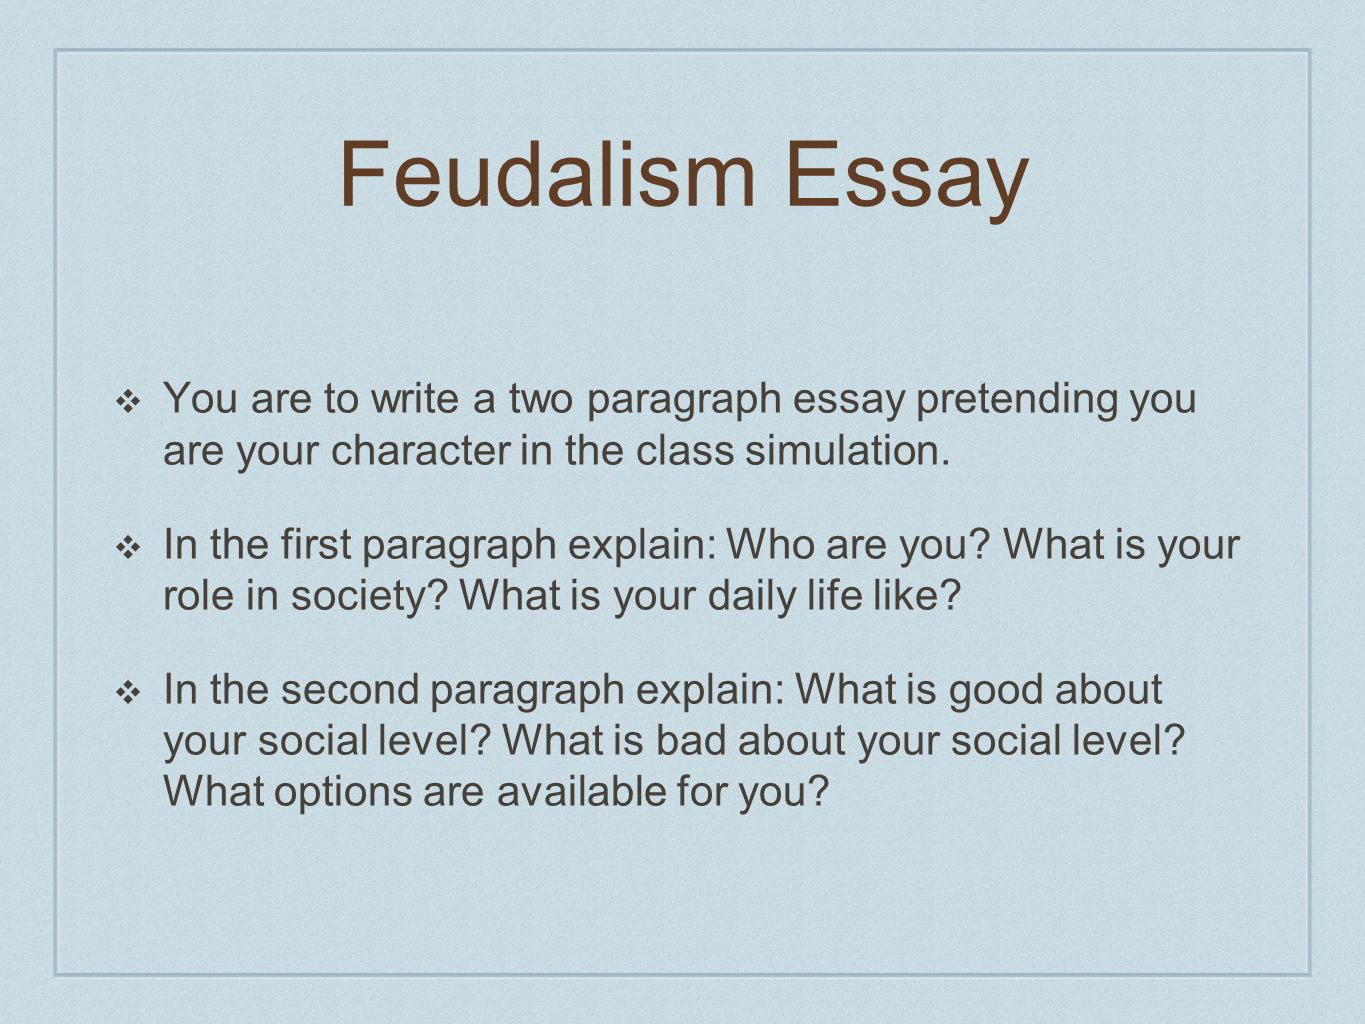 Thematic essay on feudalism